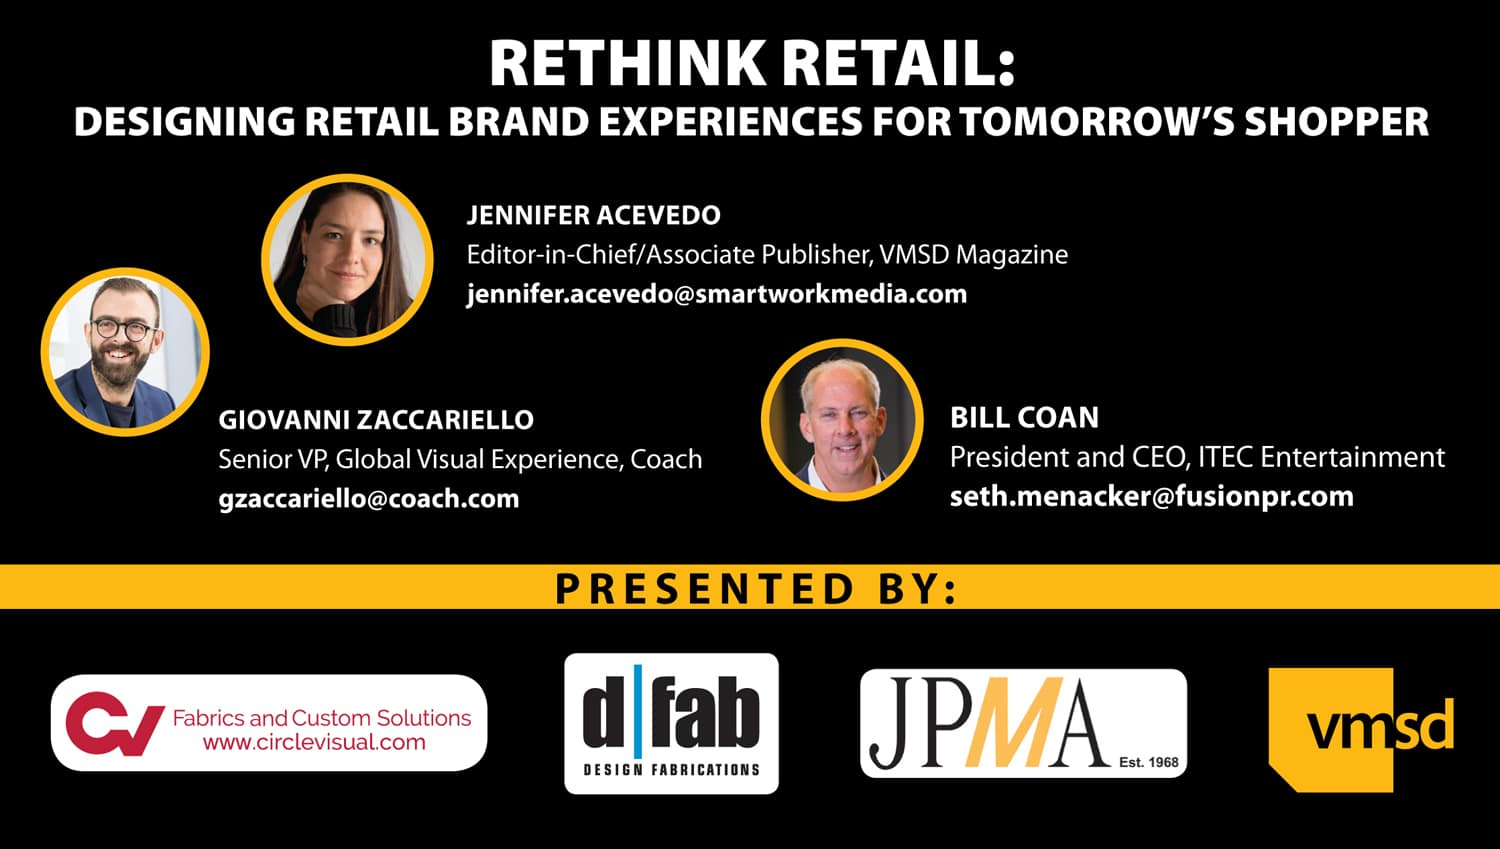 Rethink Retail: Designing Retail Brand Experiences for Tomorrow's Shopper